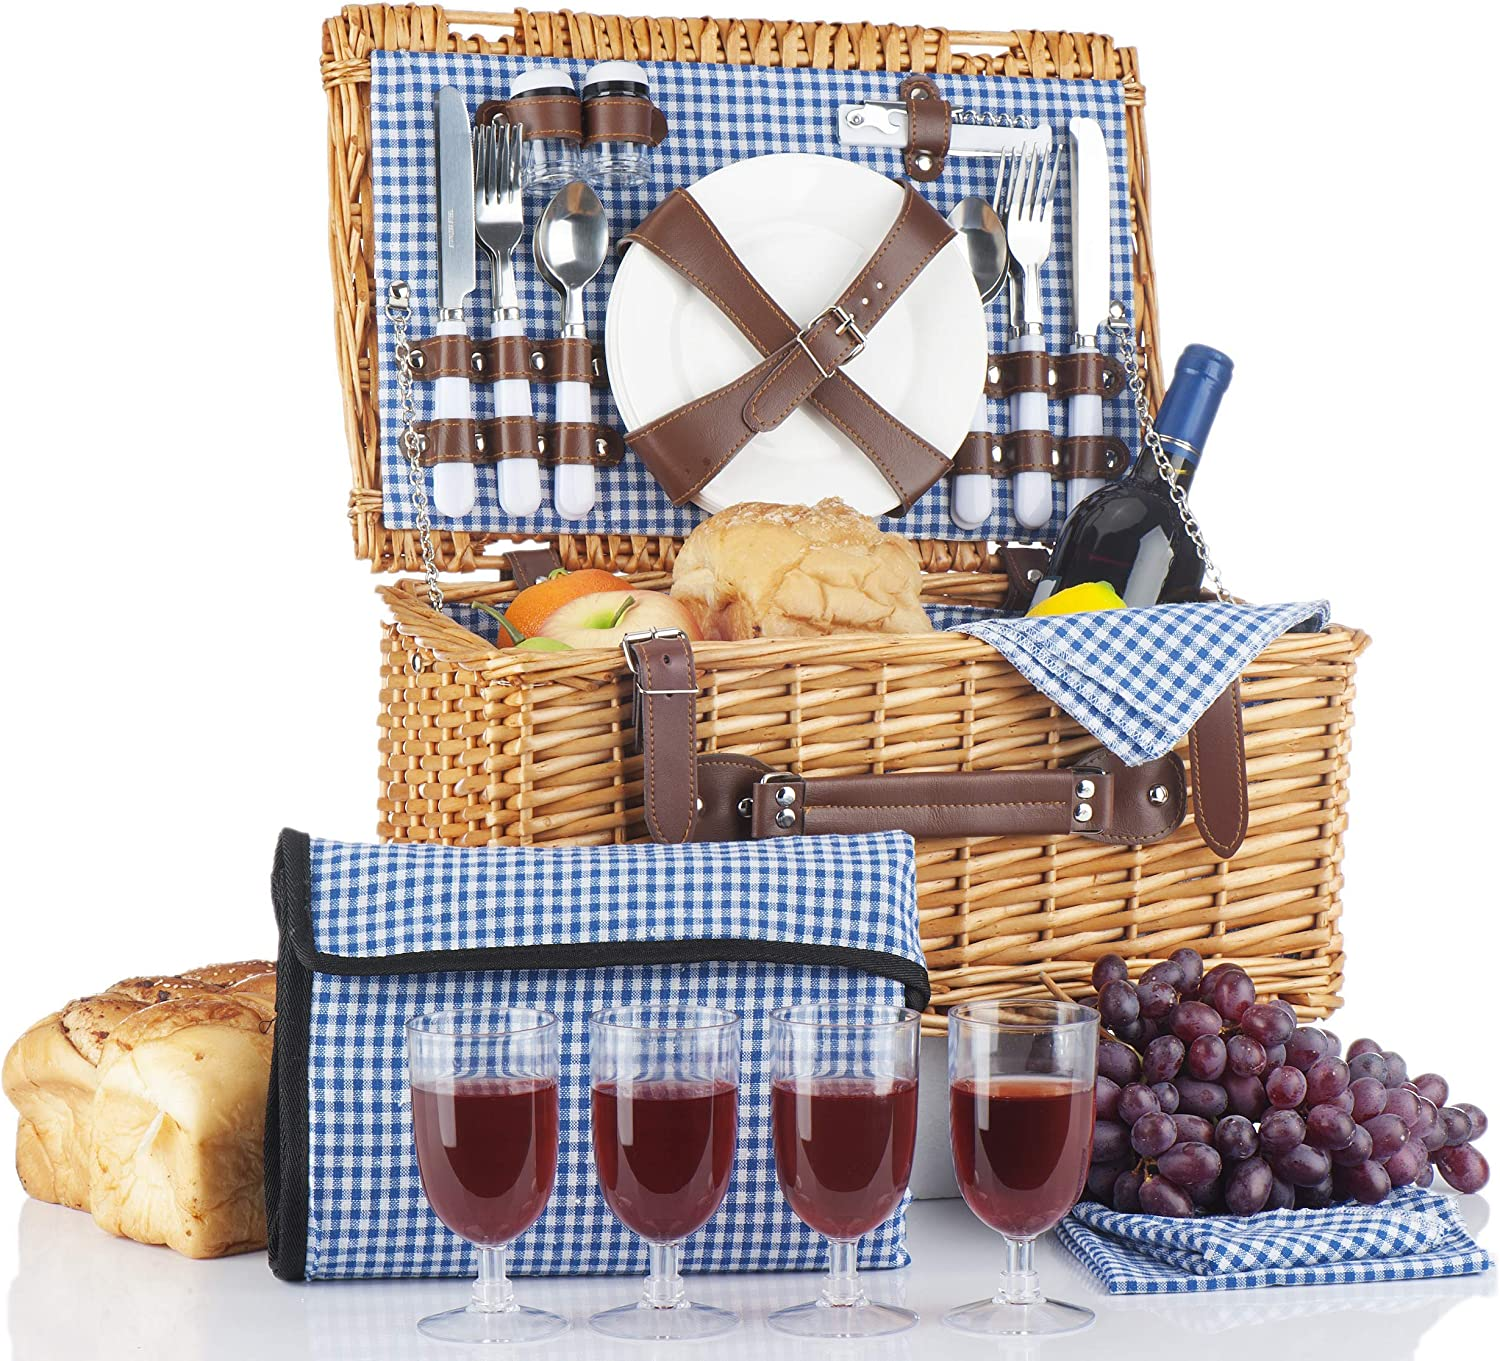 Amazon Com Picnic Basket For 4 Person Picnic Set Folding Picnic Blanket Picnic Table Set Picnic Plates Picnic Supplies Summer Picnic Kit Picnic Utensils